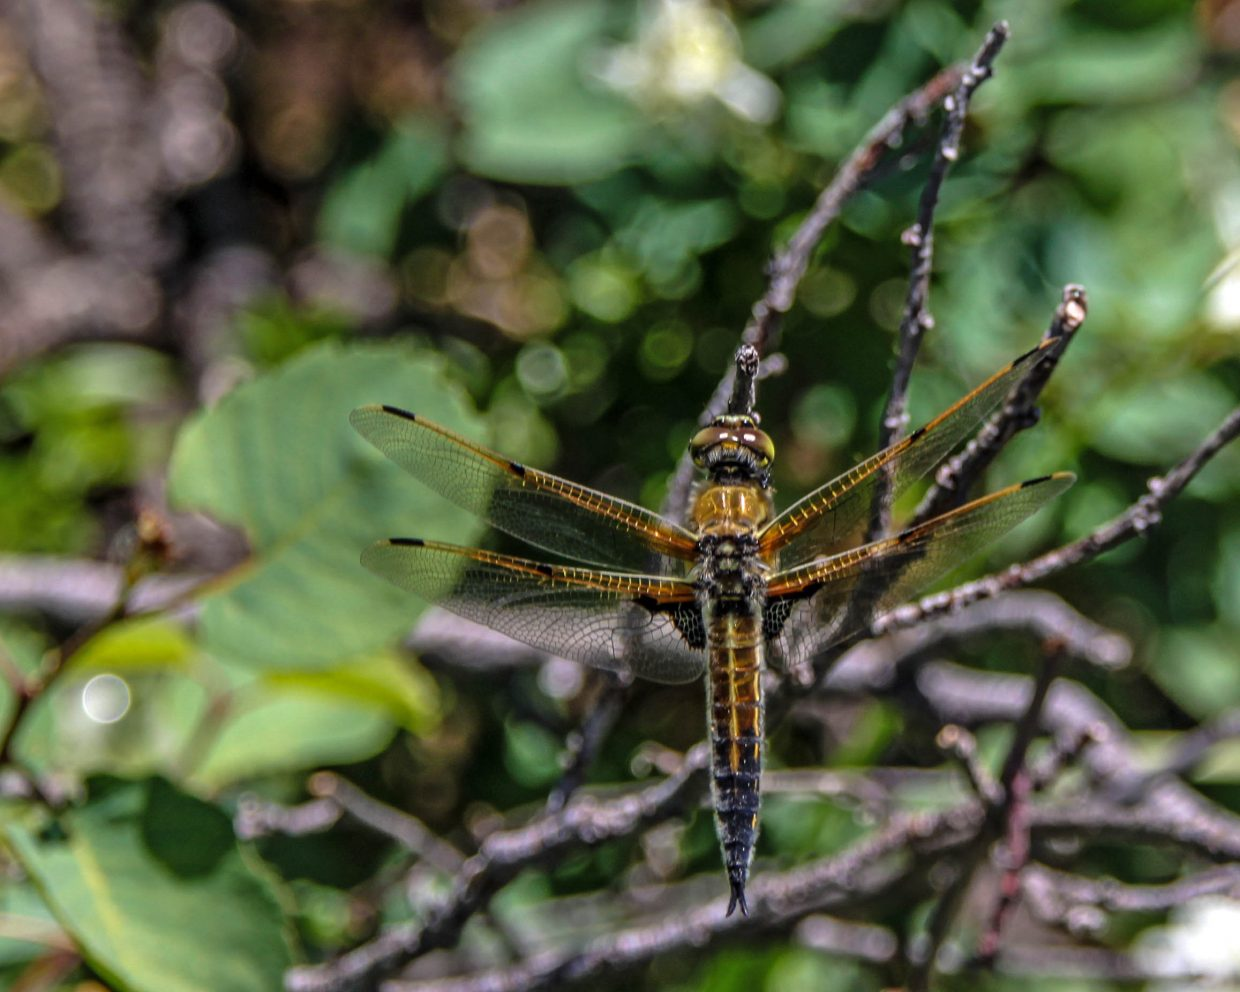 The magnificent four-spotted chaser dragonfly: I took this photo on the trail above the road to Fish Creek Falls. It is amazing how well this dragonfly blends in with its surroundings, and I had to zoom in with my lens to make sure it was there. Submitted by: G. Fredric Reynolds